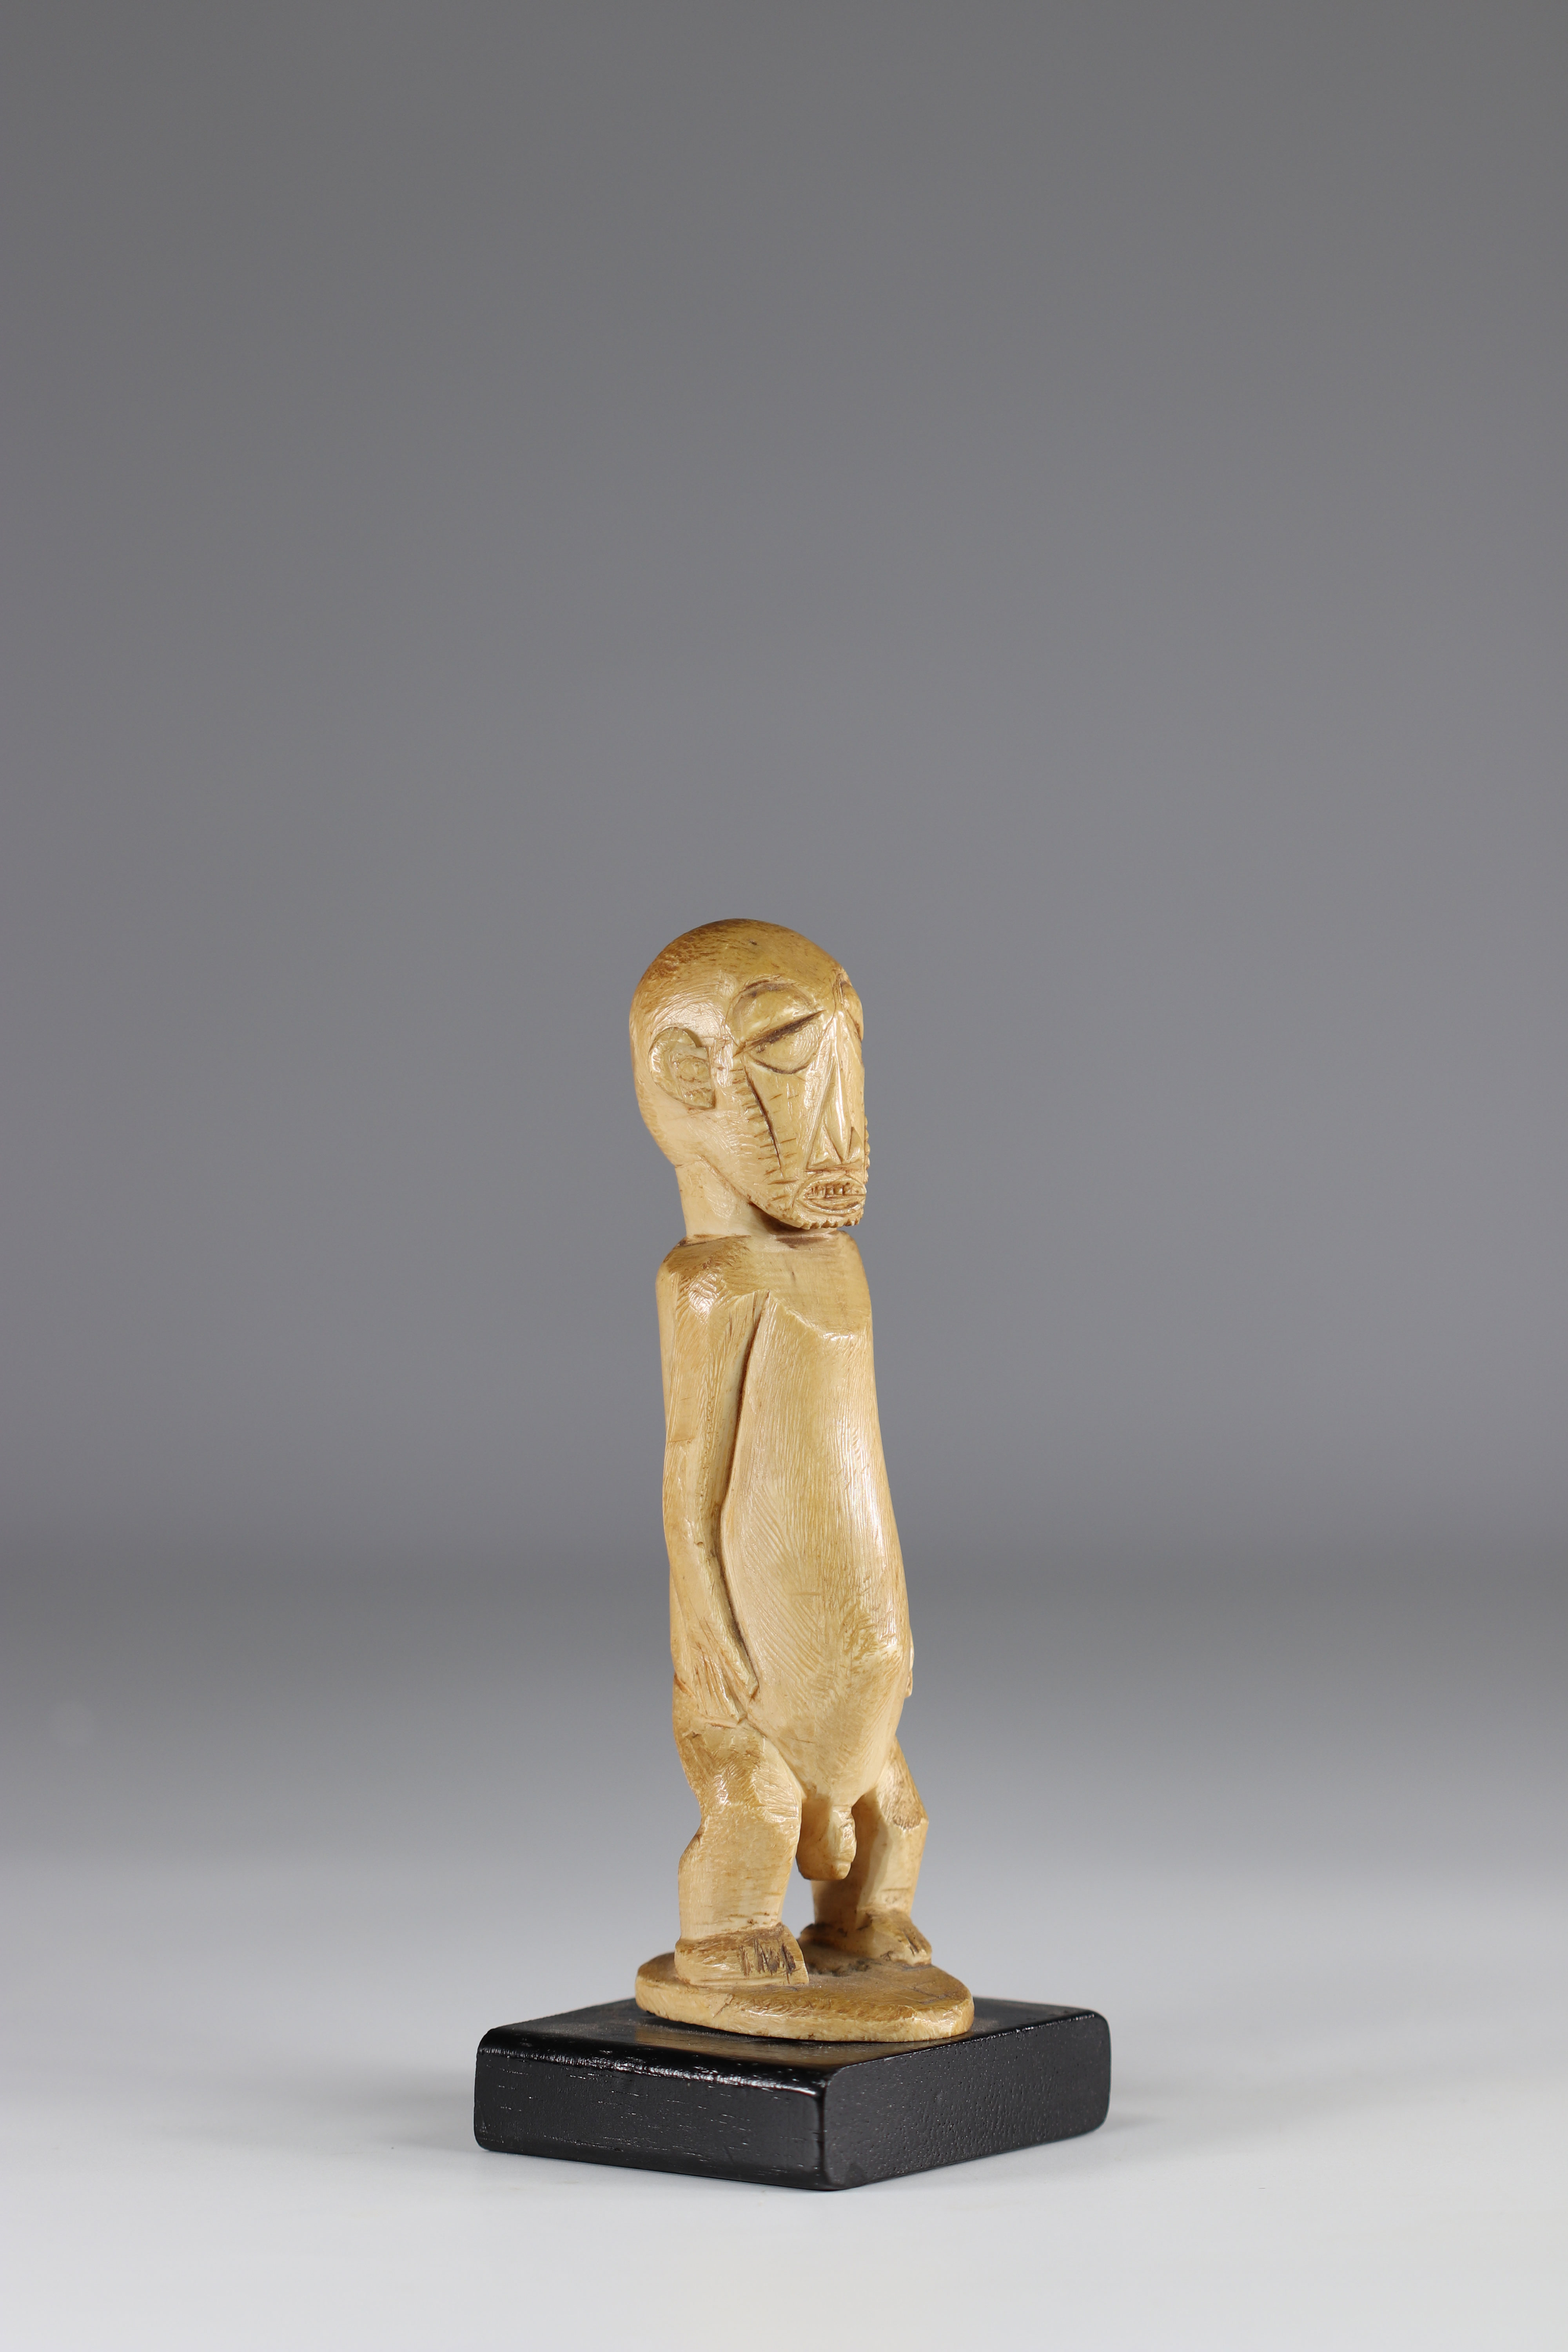 Boyo statuette - ivory - beautiful patina - coll. private Belgian - early 20th century - DRC - Afric - Image 4 of 4